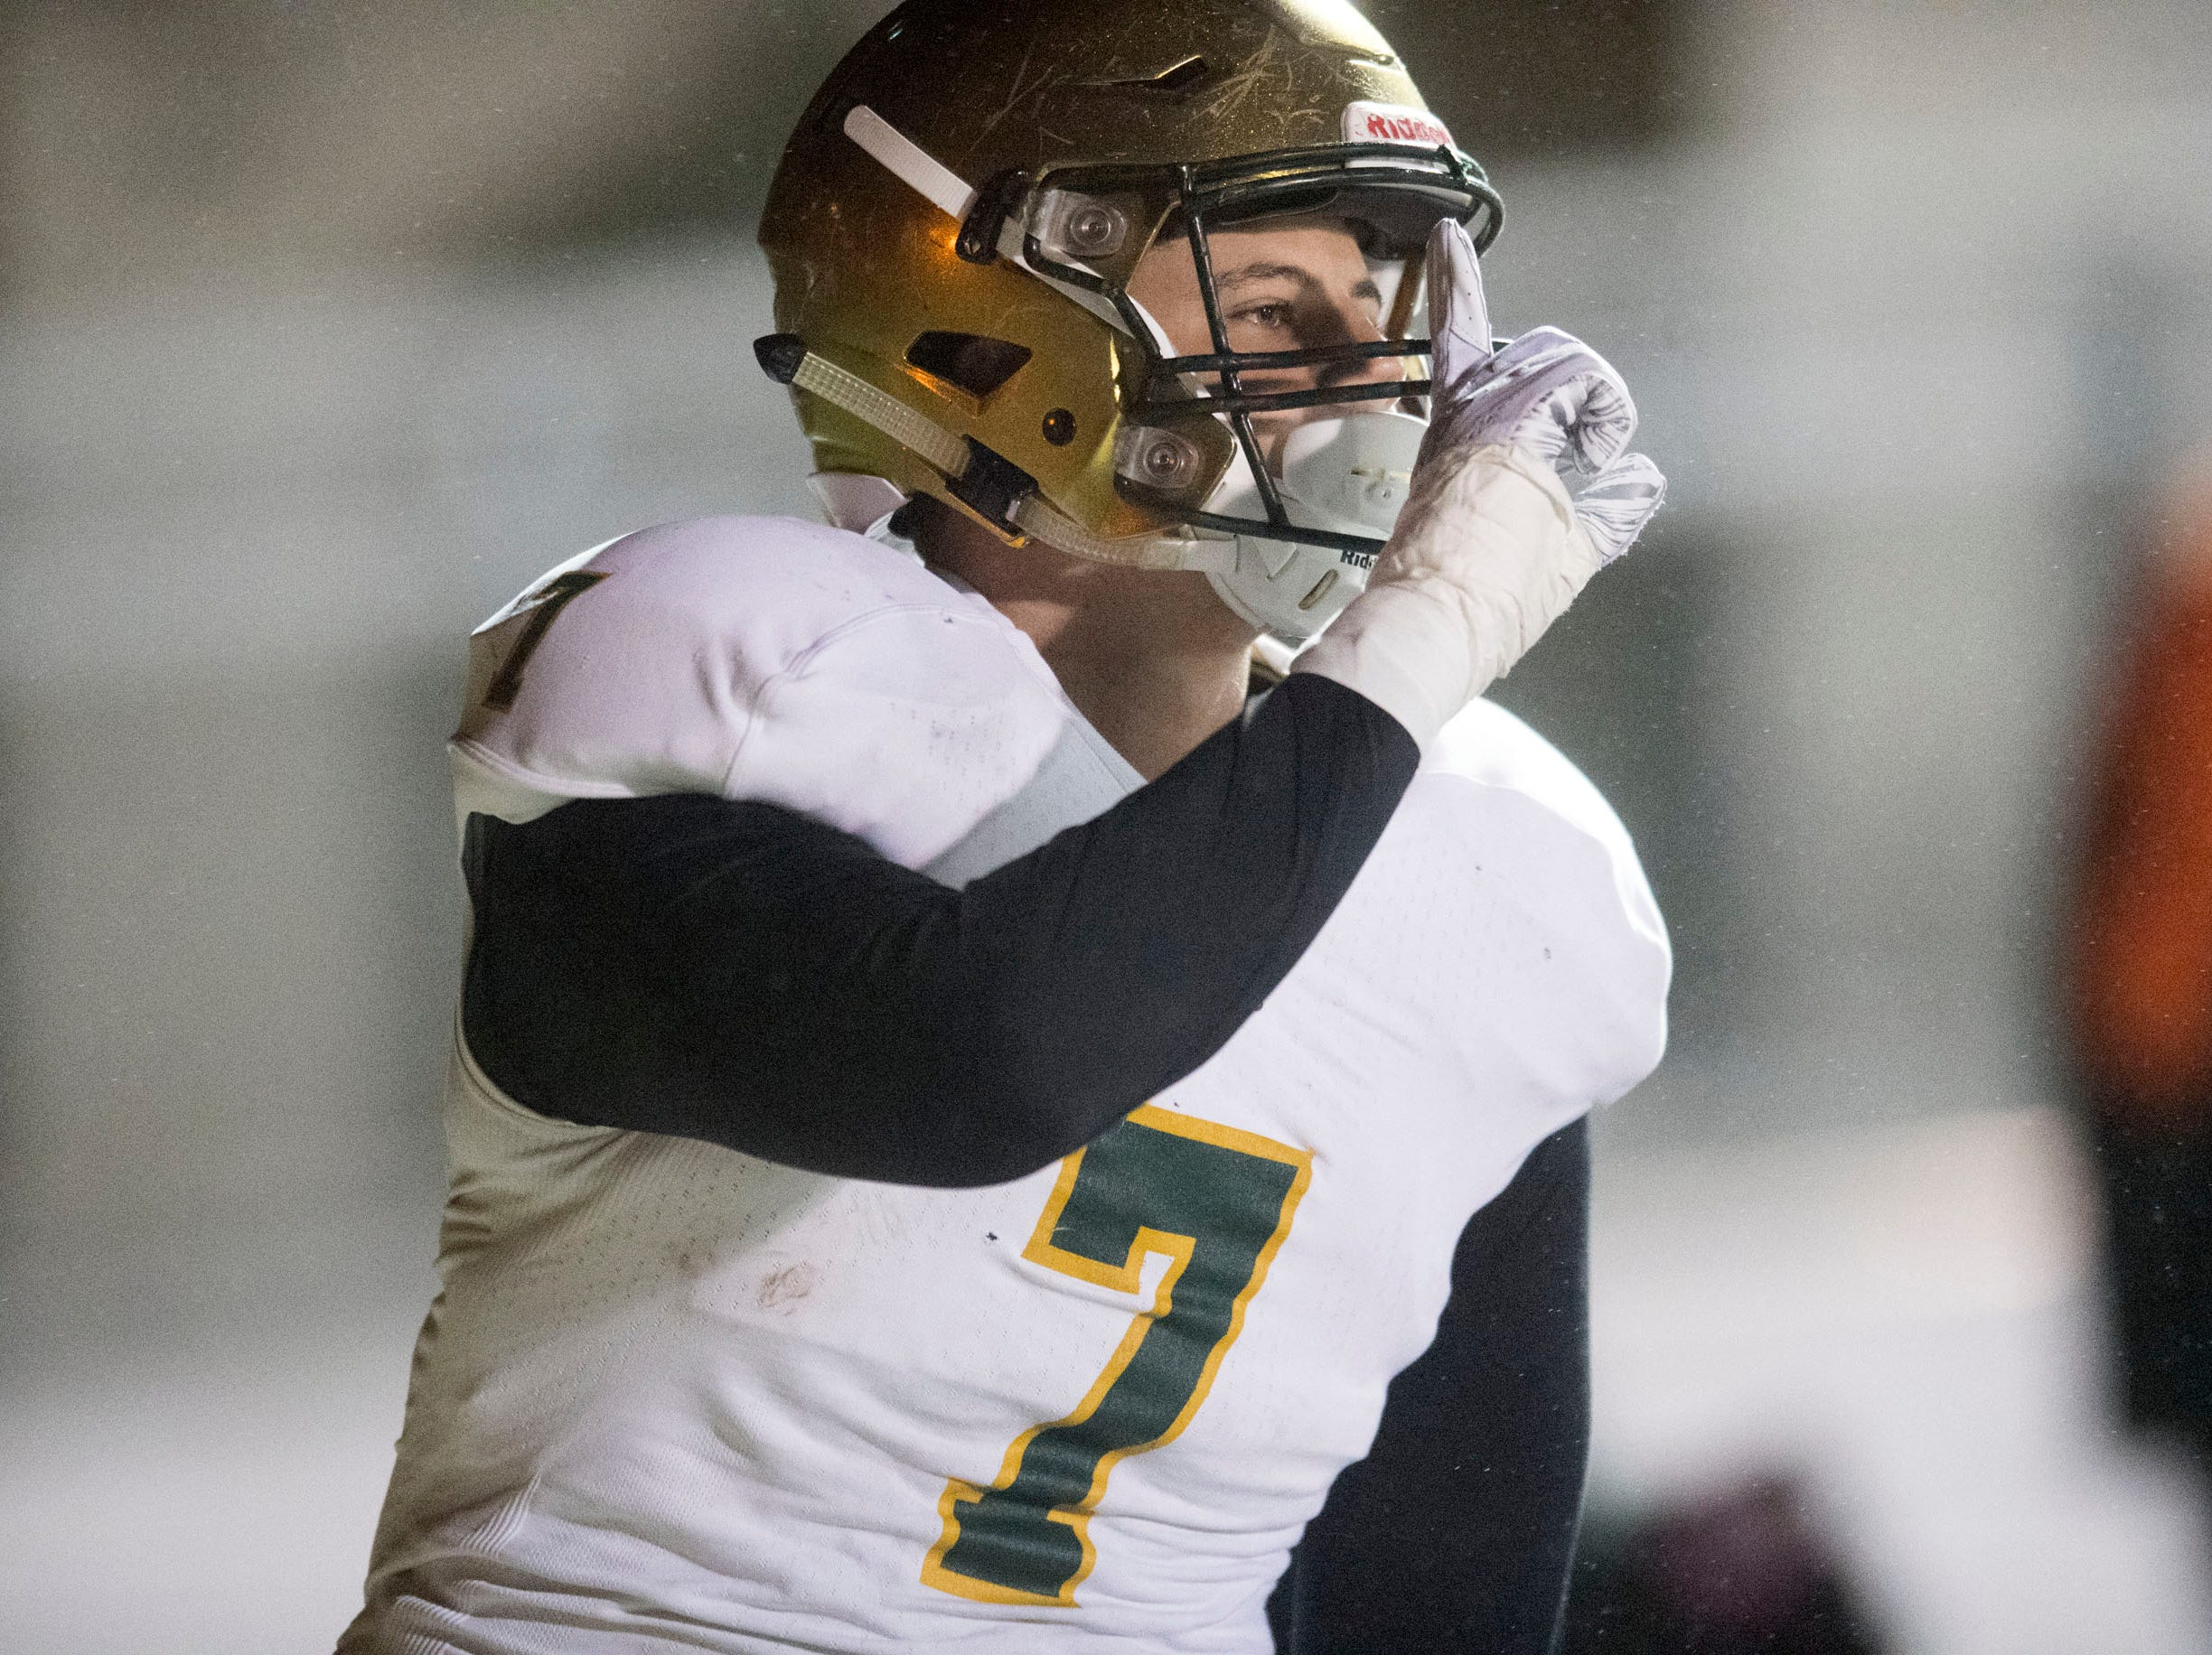 Knoxville Catholic's Stiles Moore (7) celebrates after scoring a touchdown against Fulton. Knoxville Catholic beat Fulton, 28-25 in the second round of the Class 5A playoffs on Friday, November 9, 2018.